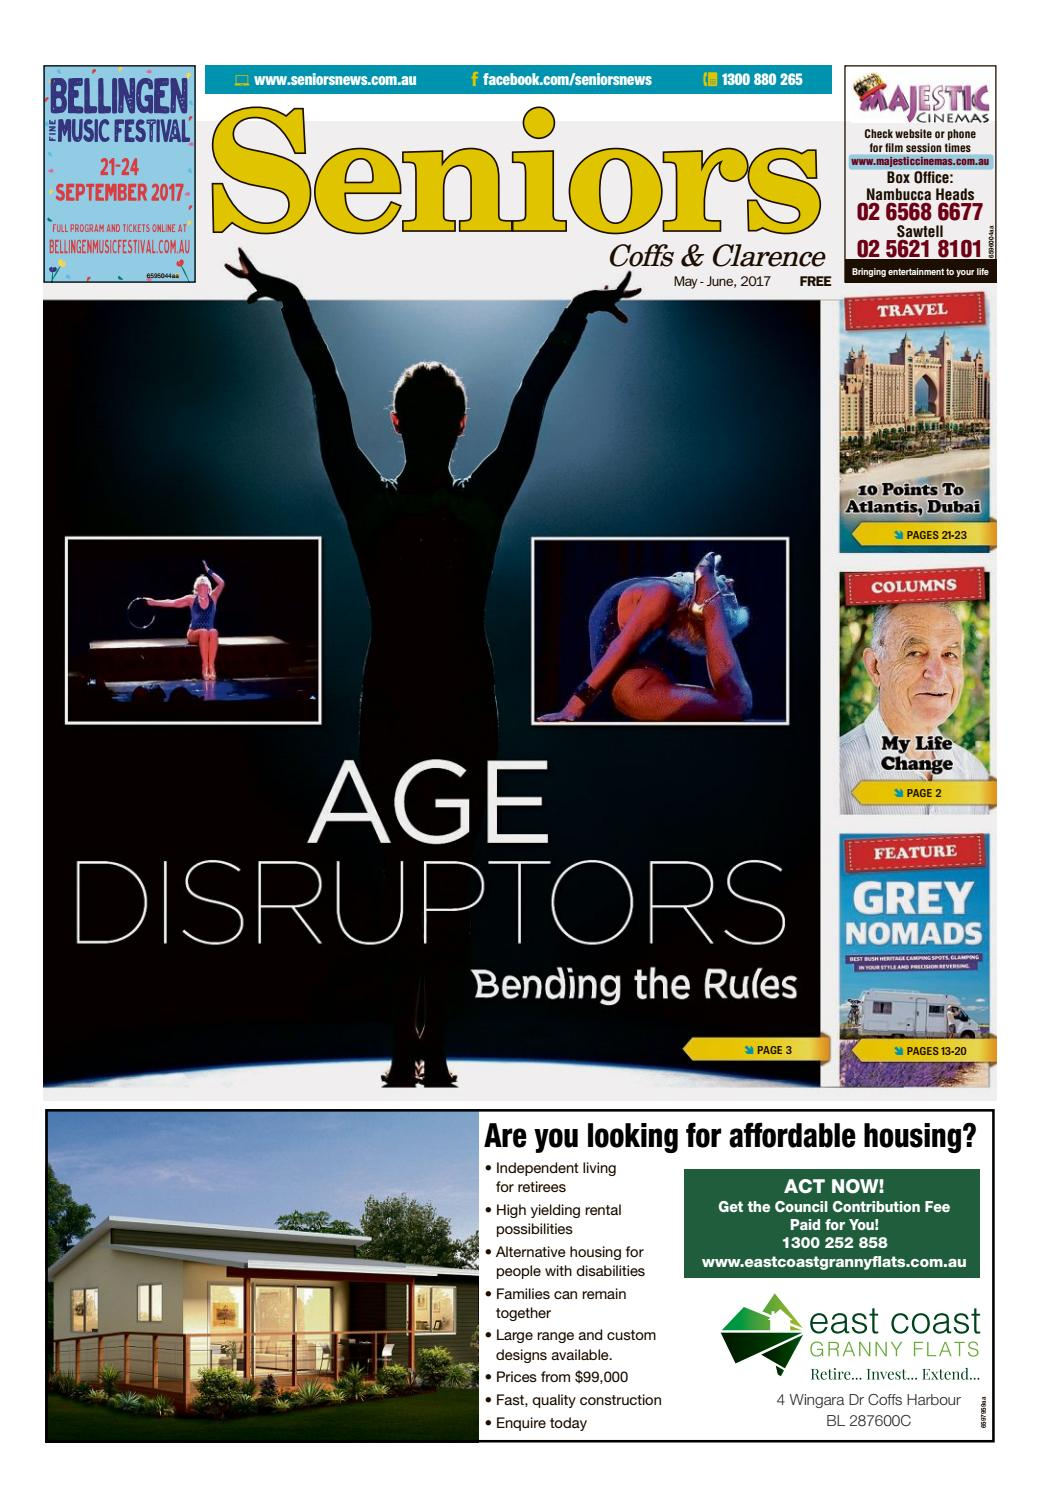 Coffs clarence may june 2017 by seniors issuu